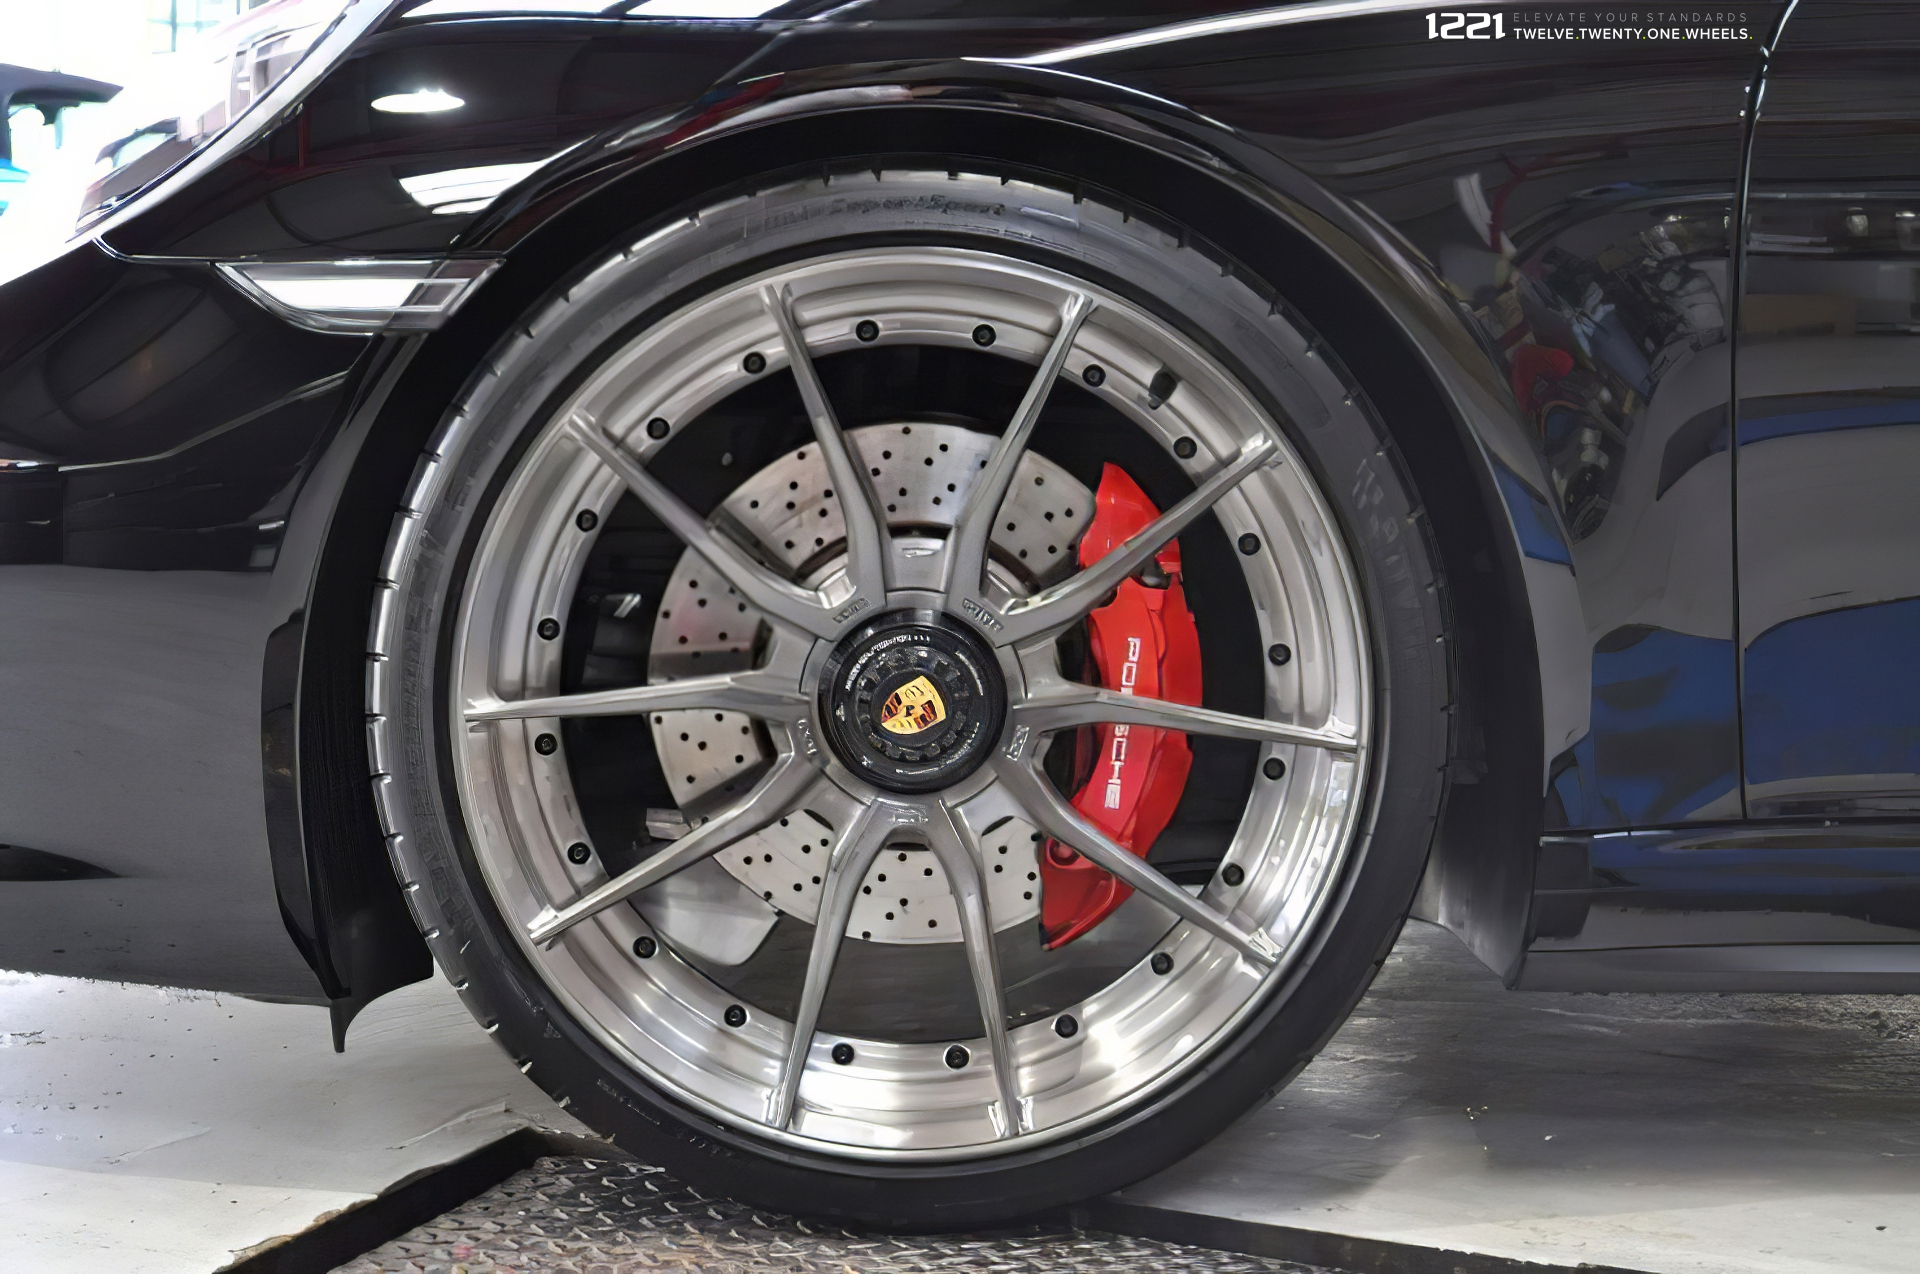 Porsche 911 Turbo S Centerlock Forged Modular Concave Wheels